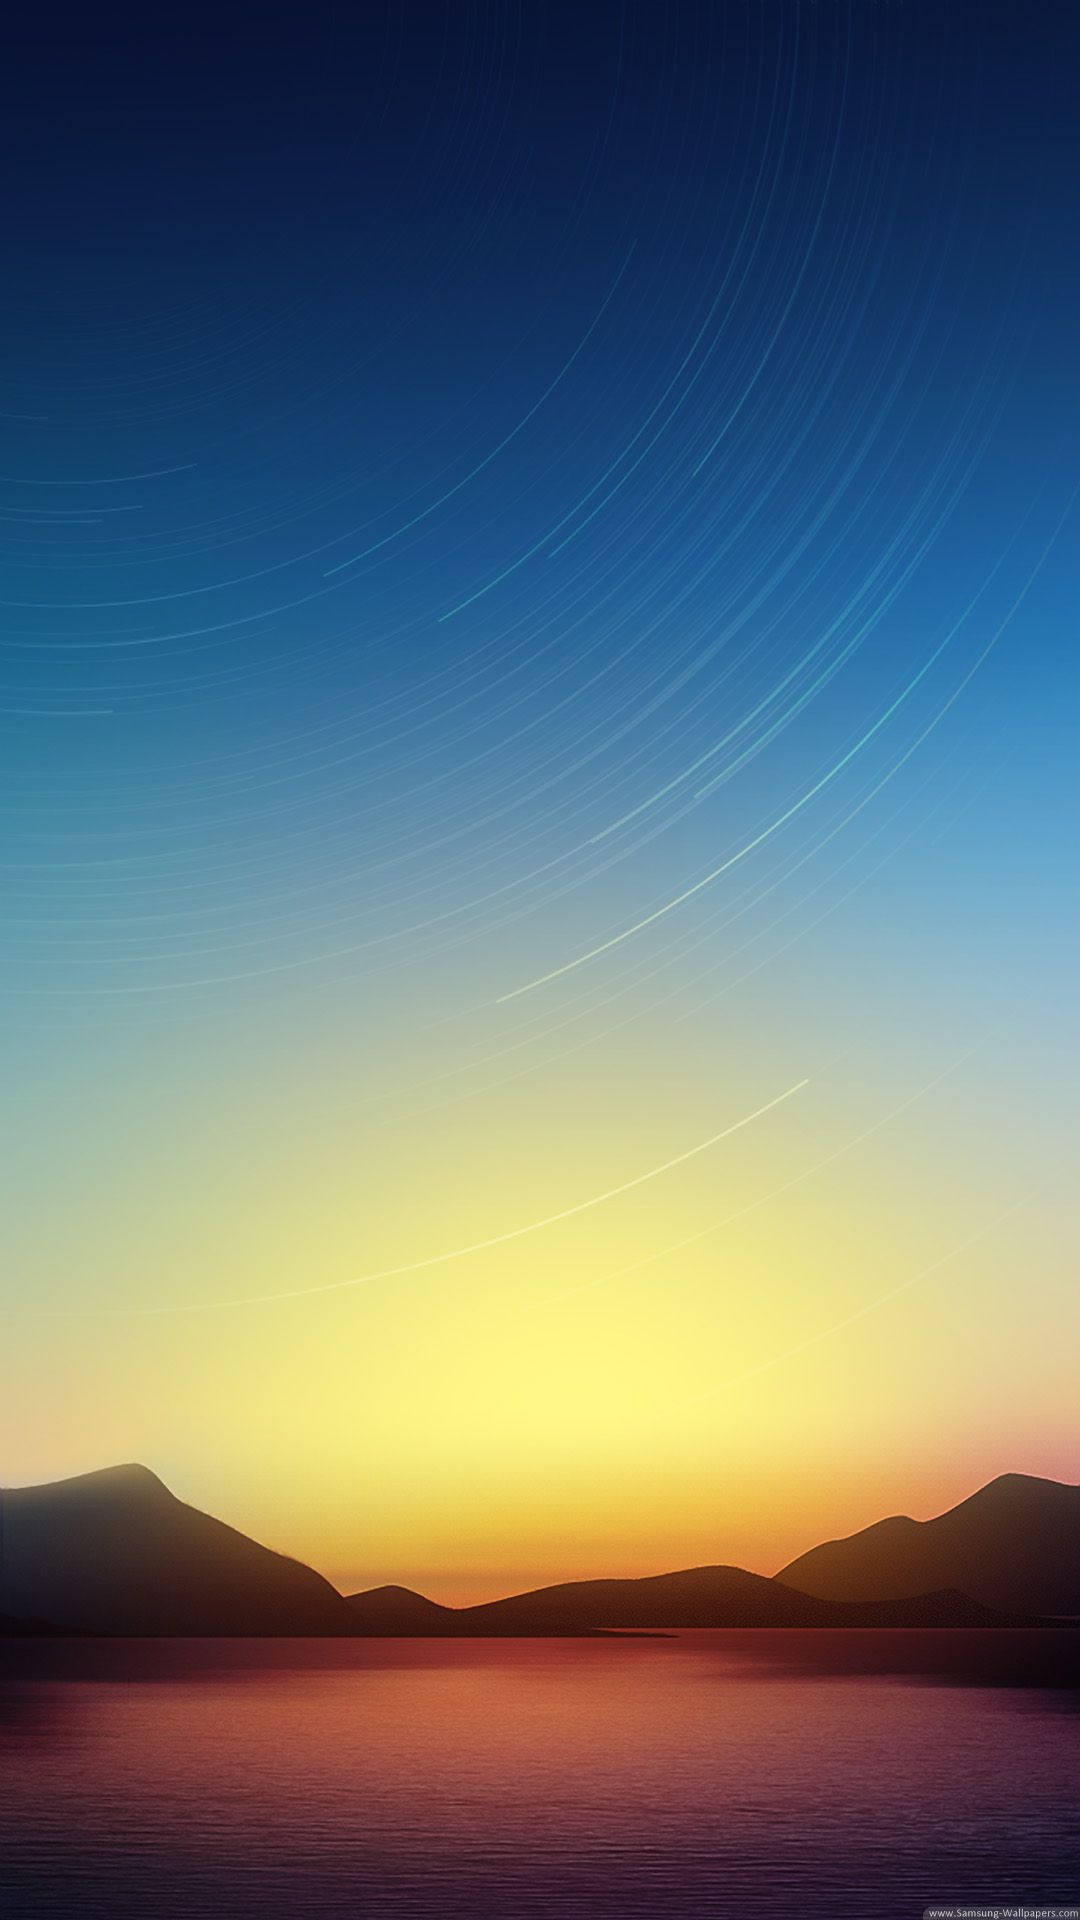 Samsung Wallpapers 1080x1920 Group (95+)